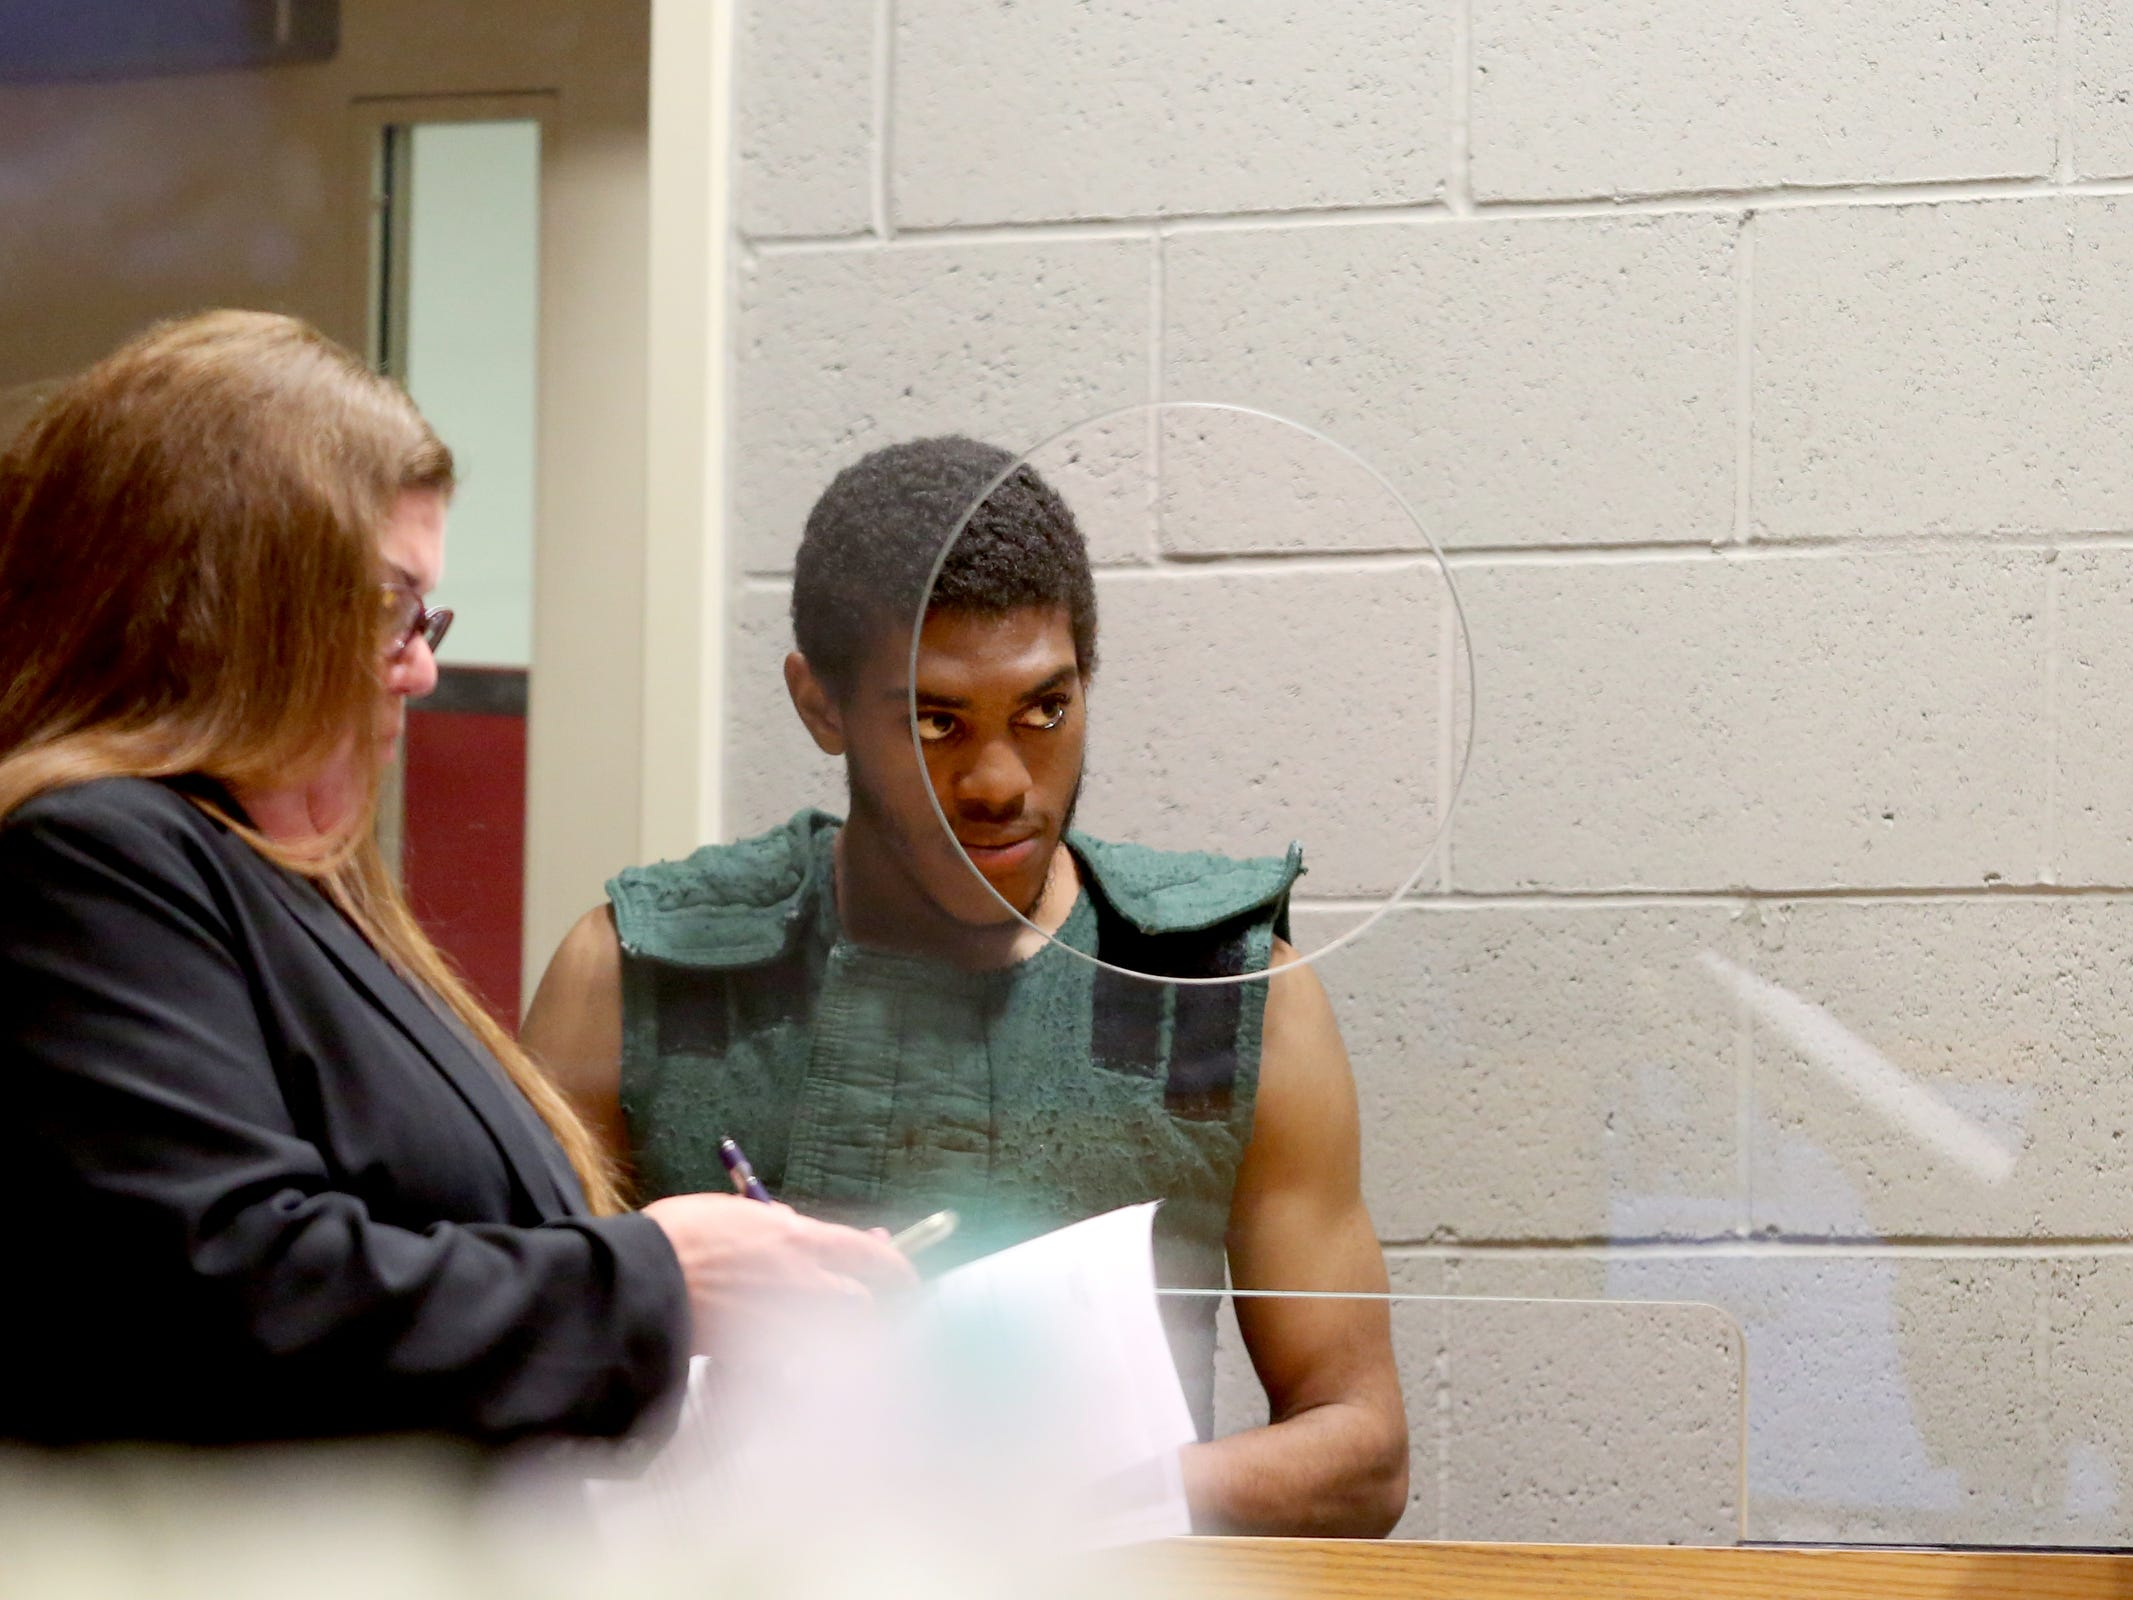 Keonte Caldwell appears with defense attorney Jane Claus for his arraignment on two aggravated murder charges and one attempted aggravated murder charge at the Marion County Court Annex in Salem on May 9, 2019. He and another man charged in the shooting are both being held without bail.